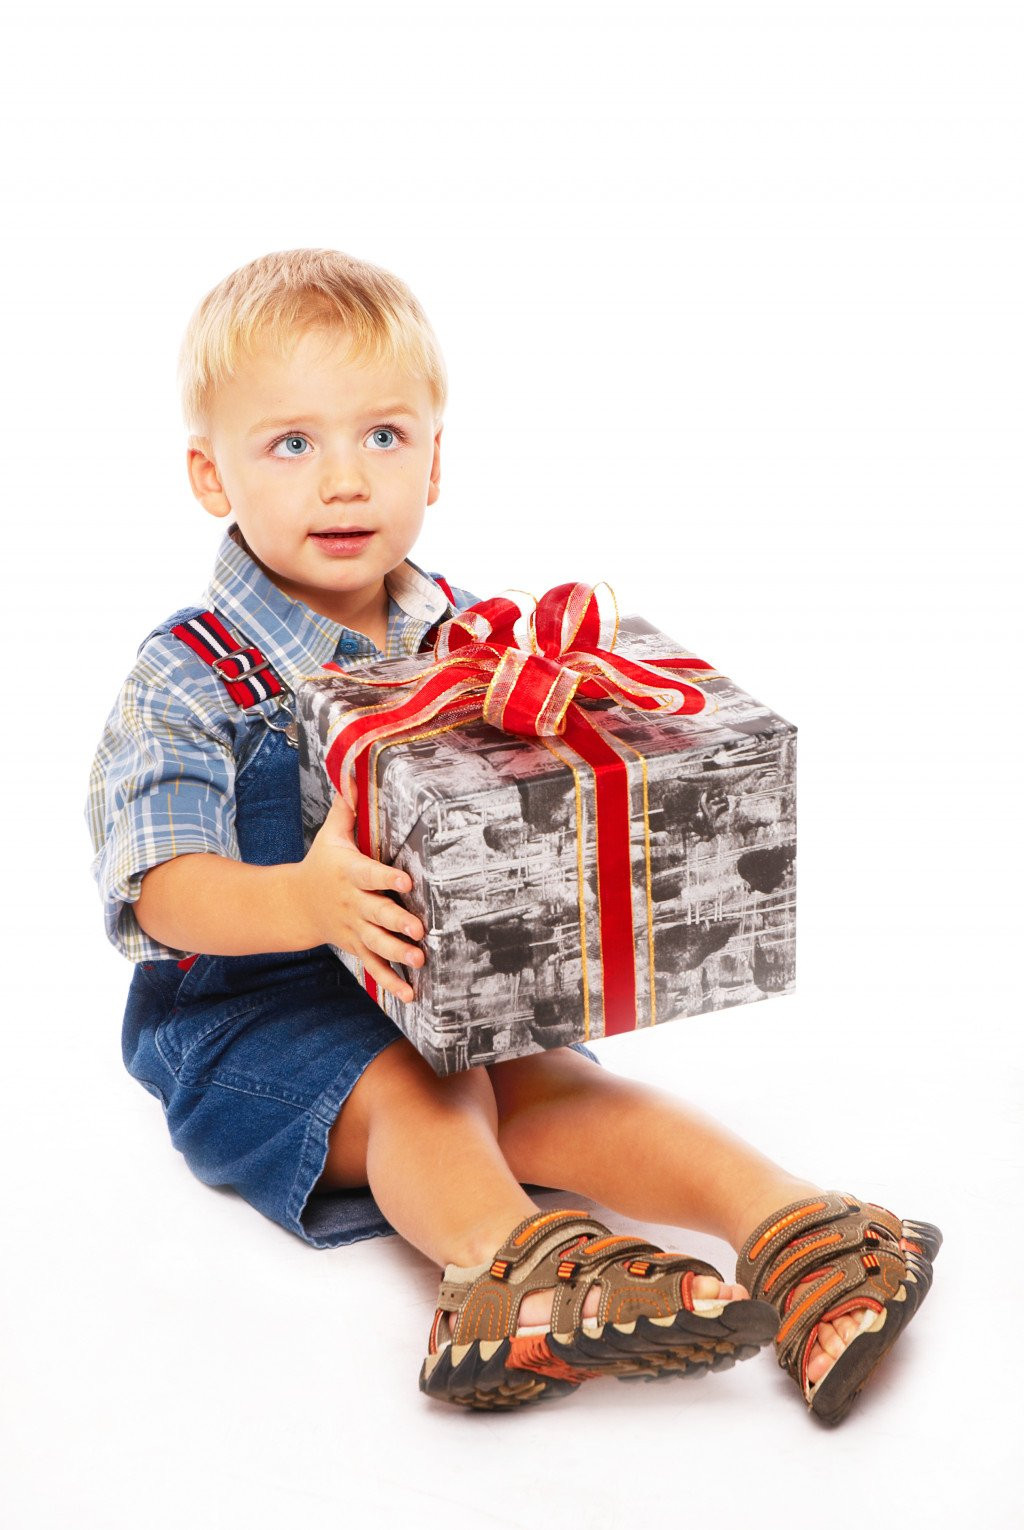 Birthday Gift Ideas 3 Year Old Boy  Best Birthday and Christmas Gift Ideas for a Three Year